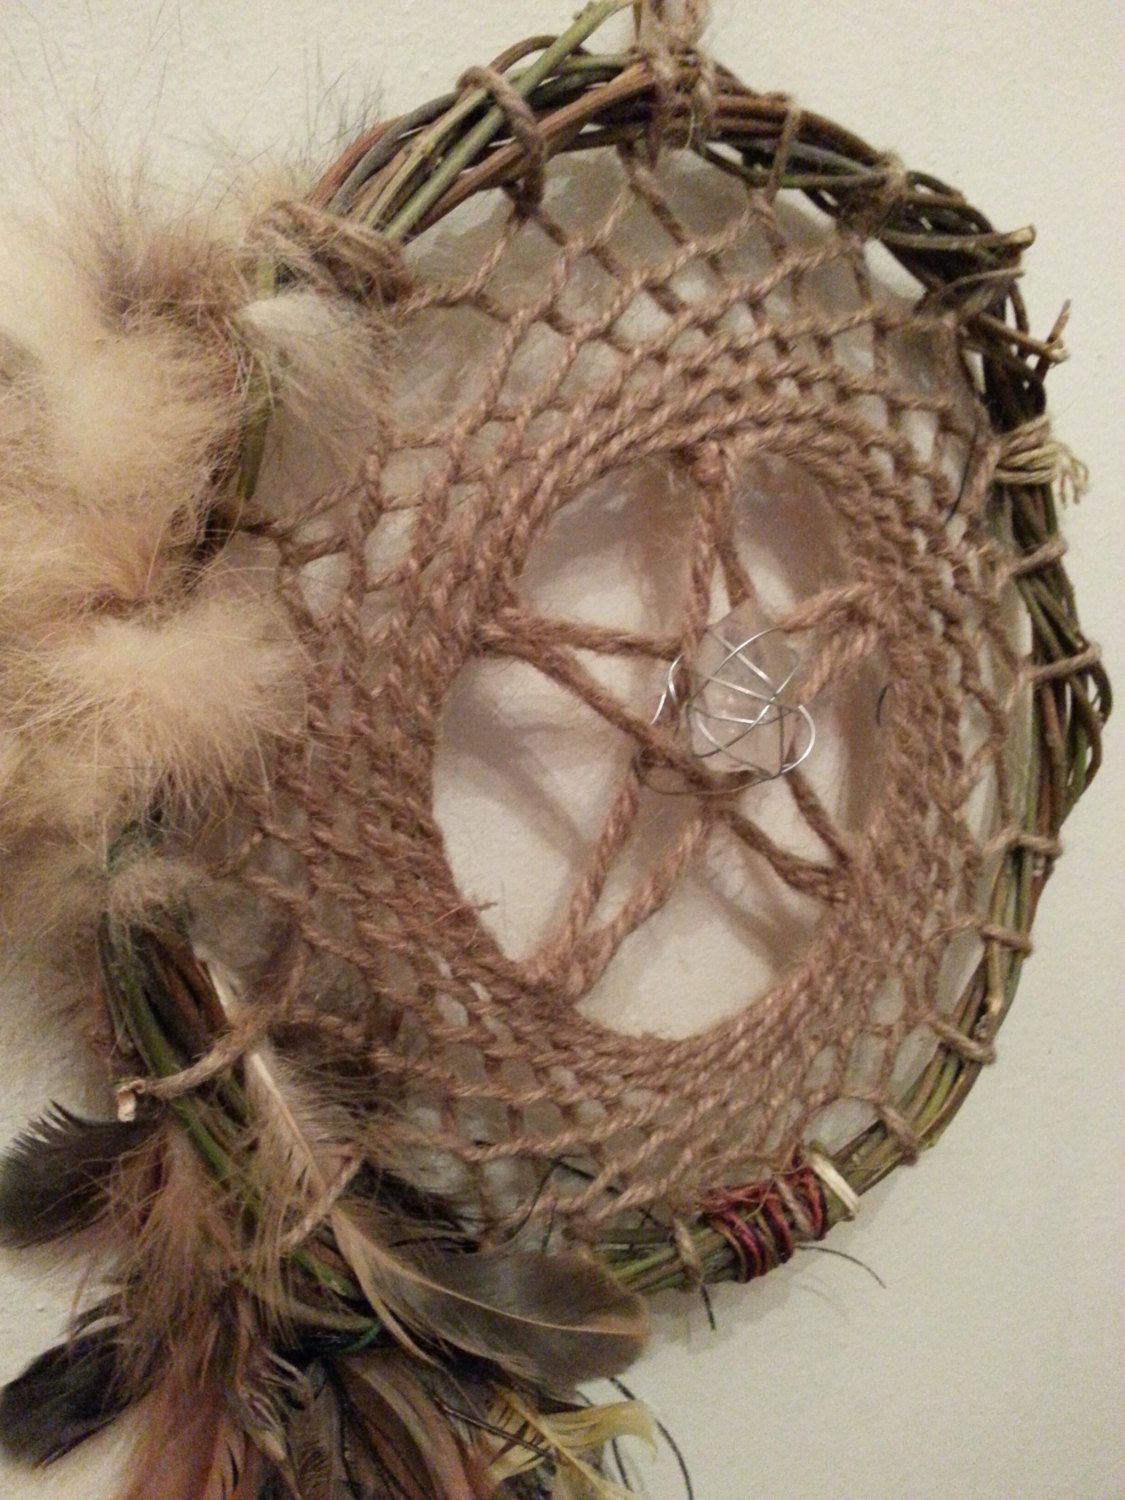 The+Dreamcatcher+of+the+Whispering+Wood+by+MonarchMirror+on+Etsy,+$55.00